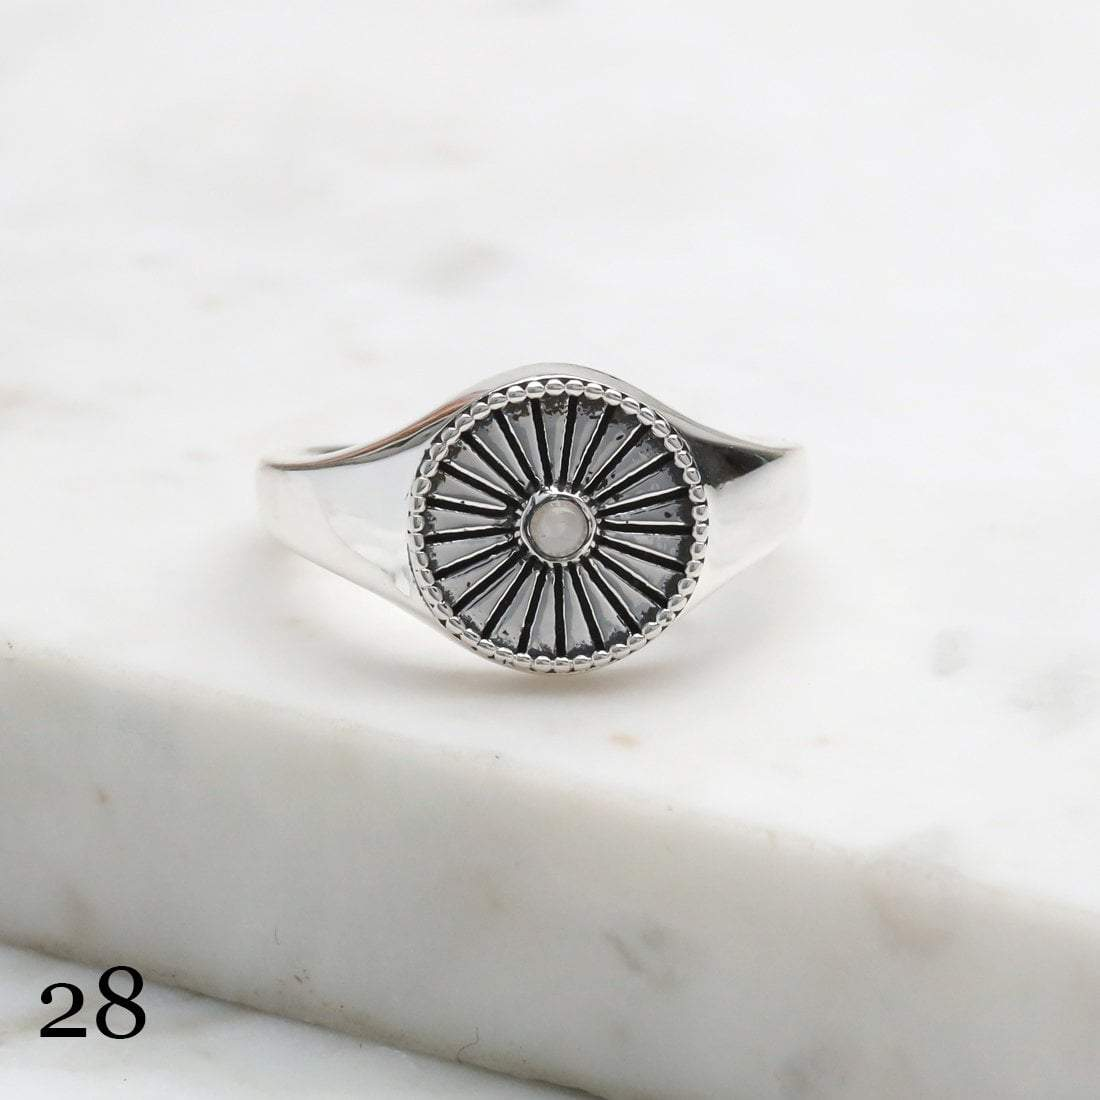 Midsummer Star Ring 12 Days of Festivities - Sample Sale 2